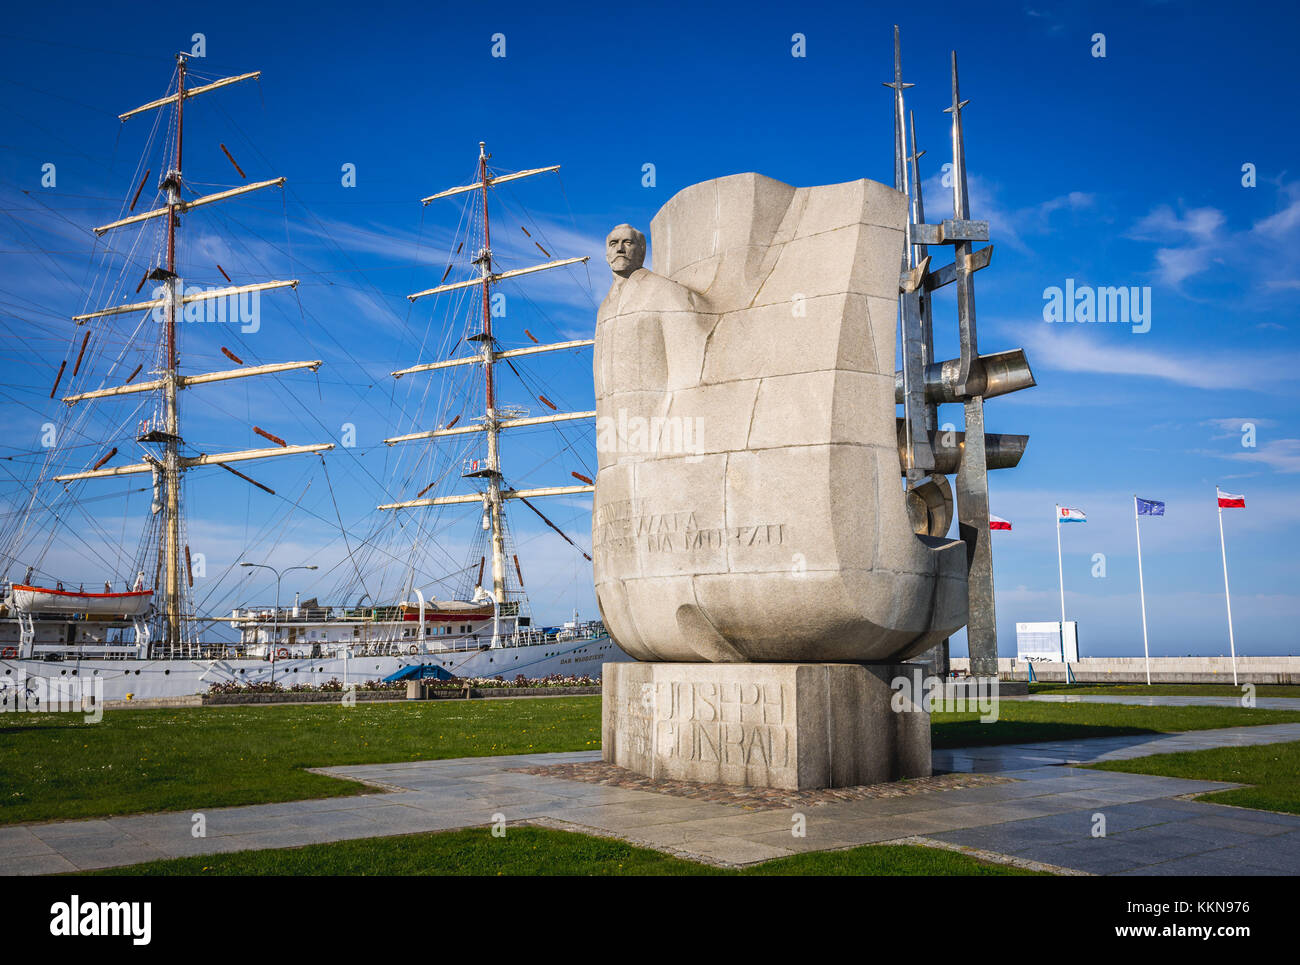 Joseph Conrad monument in Port in Gdynia city, Pomeranian Voivodeship of Poland. Sail training ship Dar Mlodziezy Stock Photo